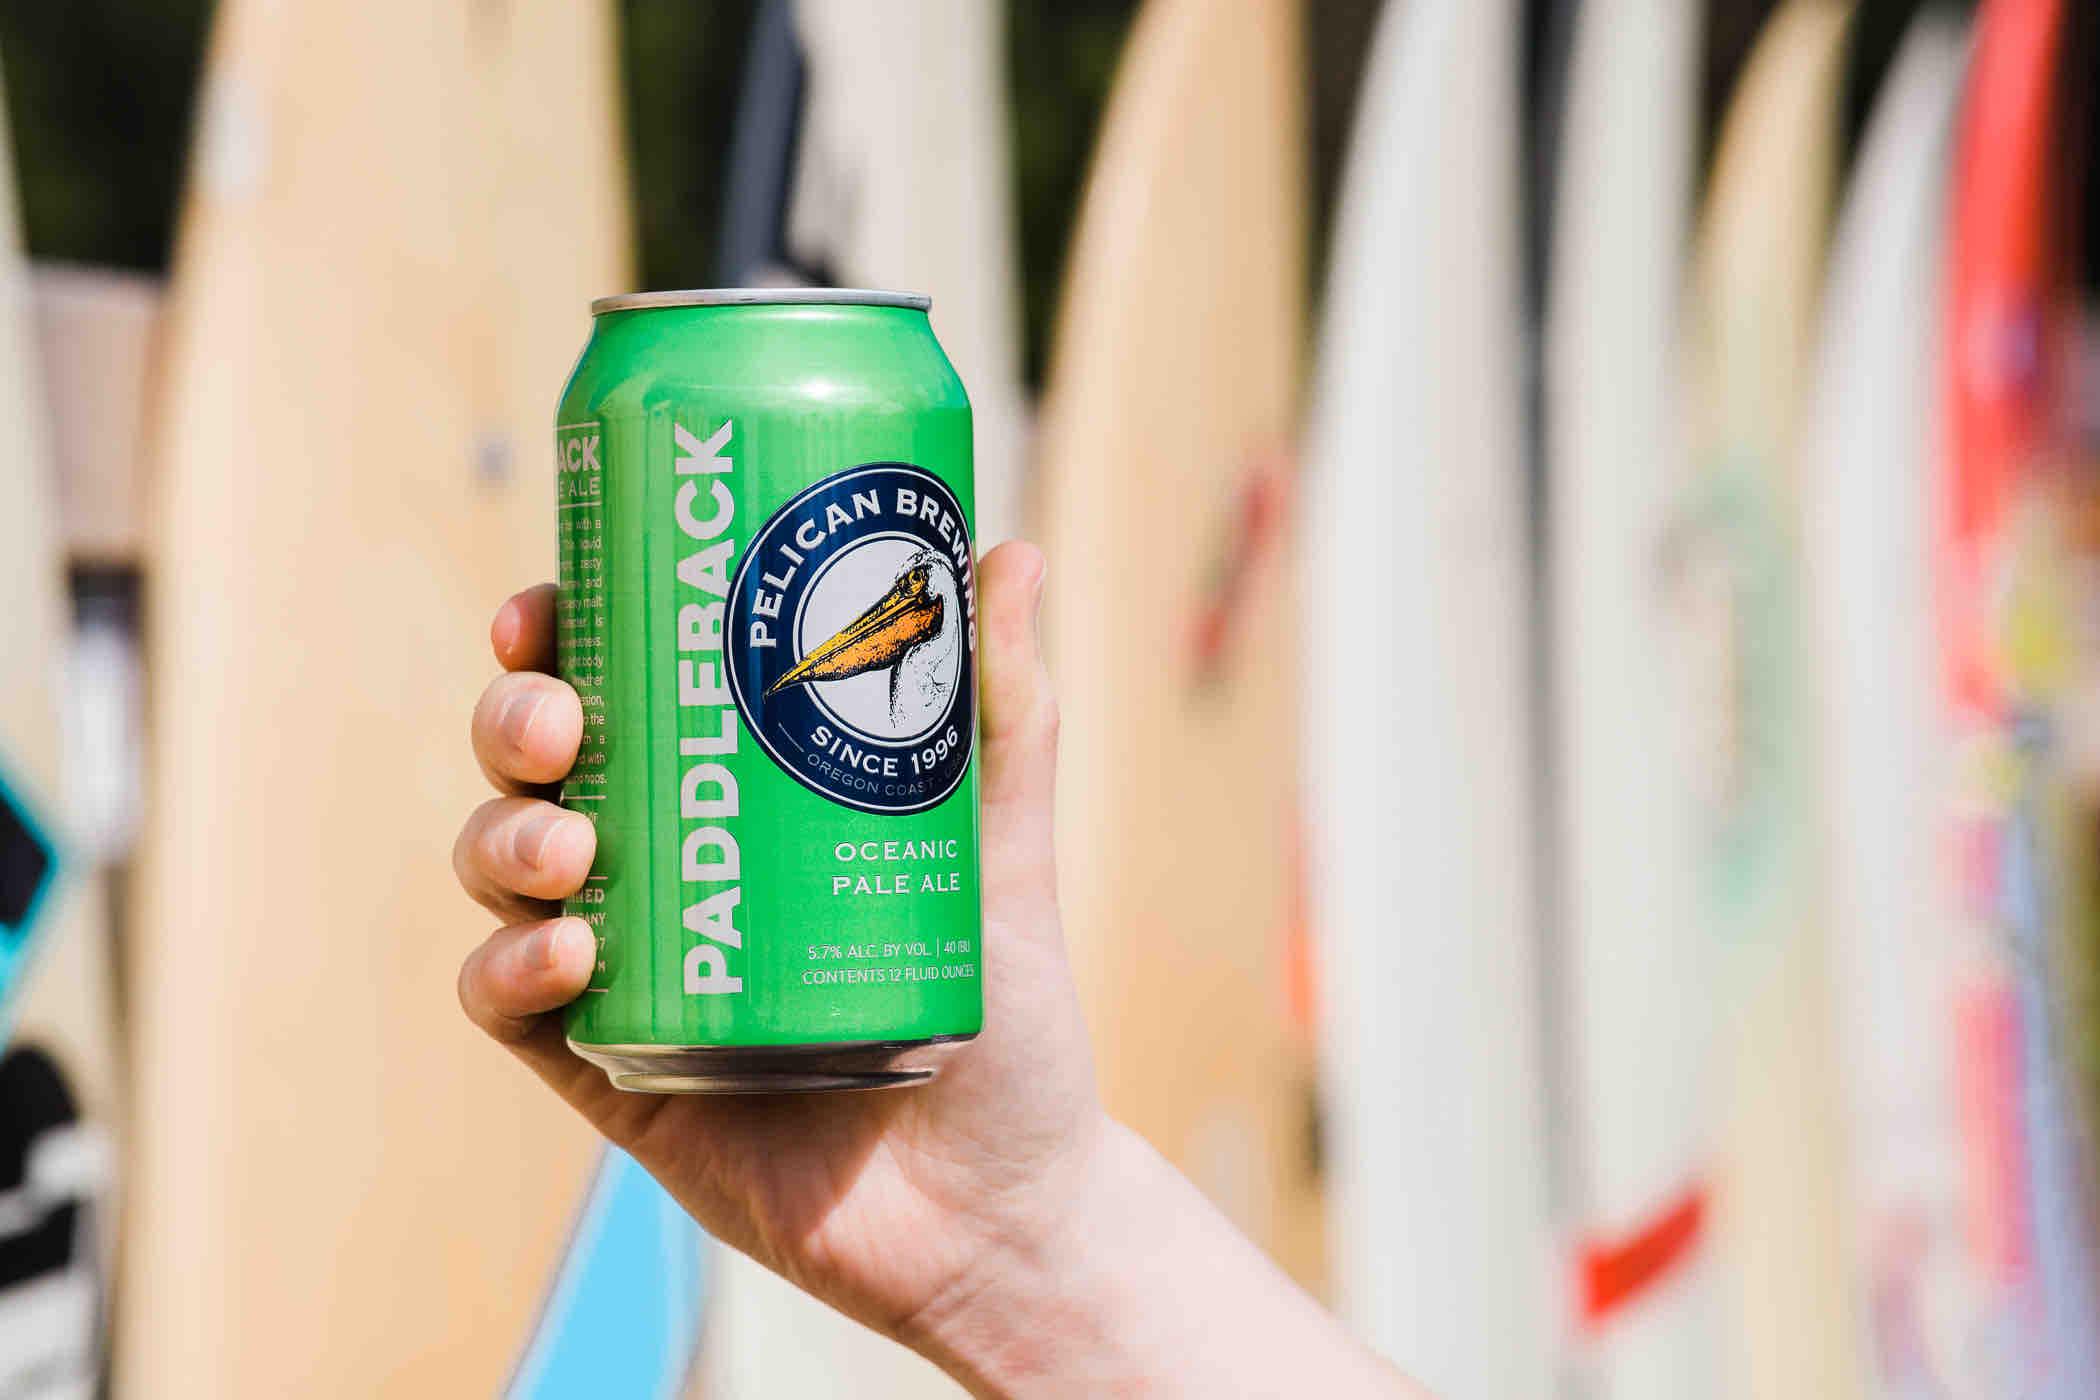 image of Paddleback Oceanic Pale Ale courtesy of Pelican Brewing Co.